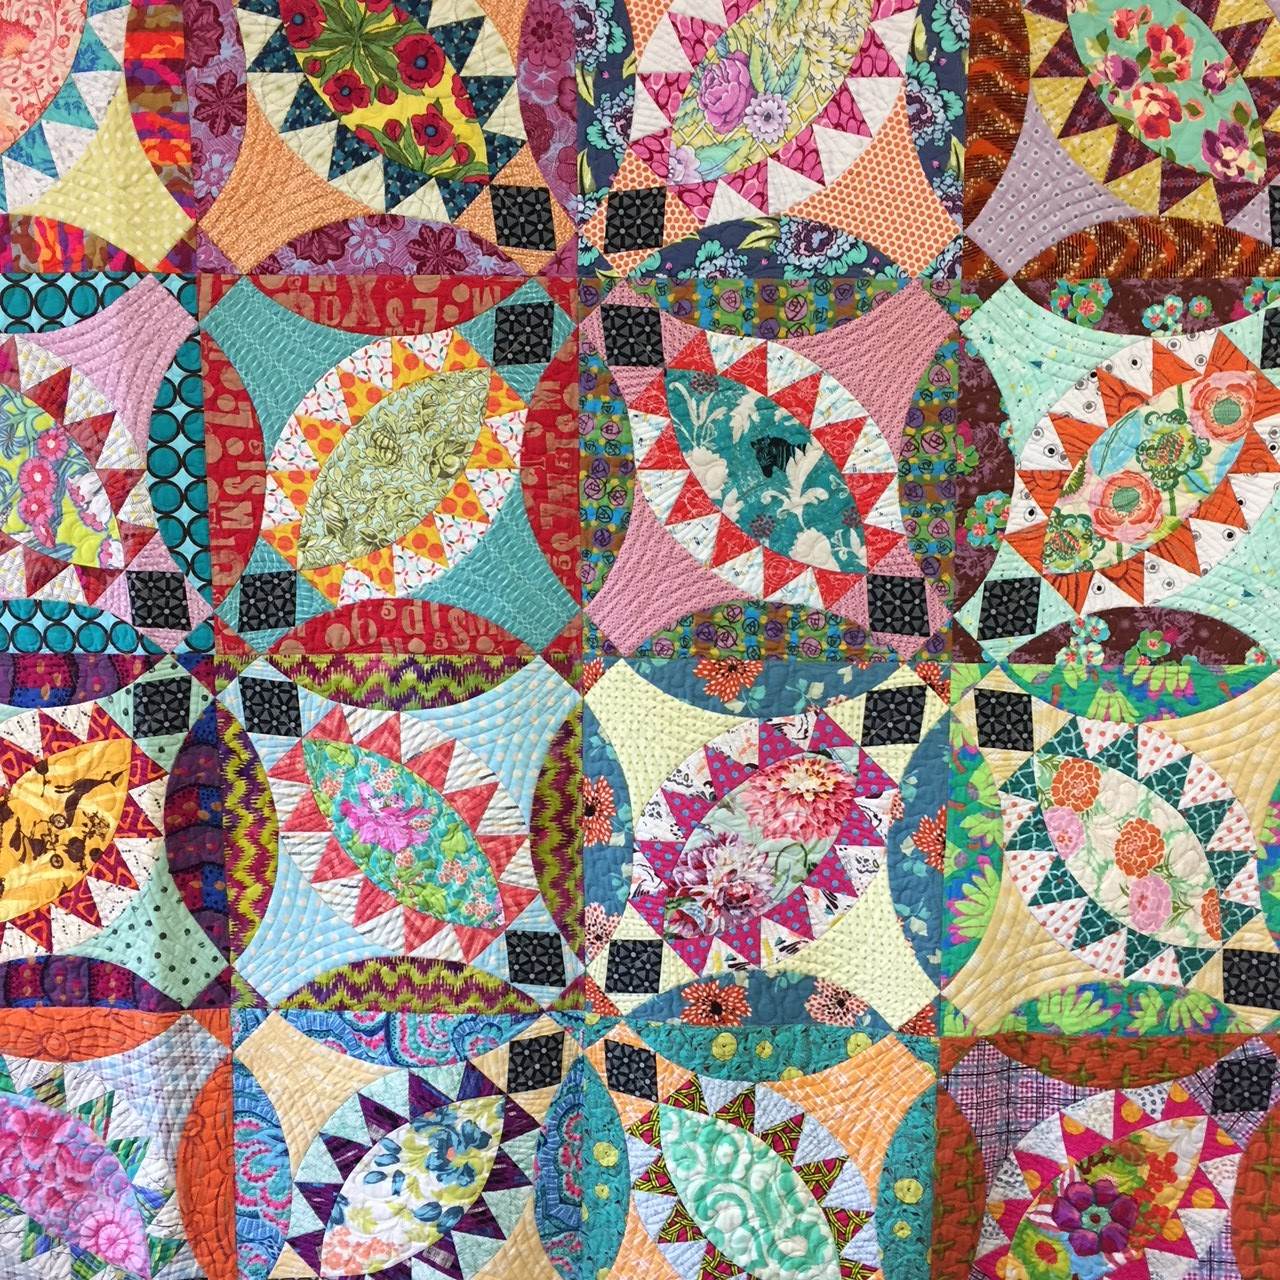 Wendy's quilts and more: Pickled Fish with Chris Jurd at Symposium